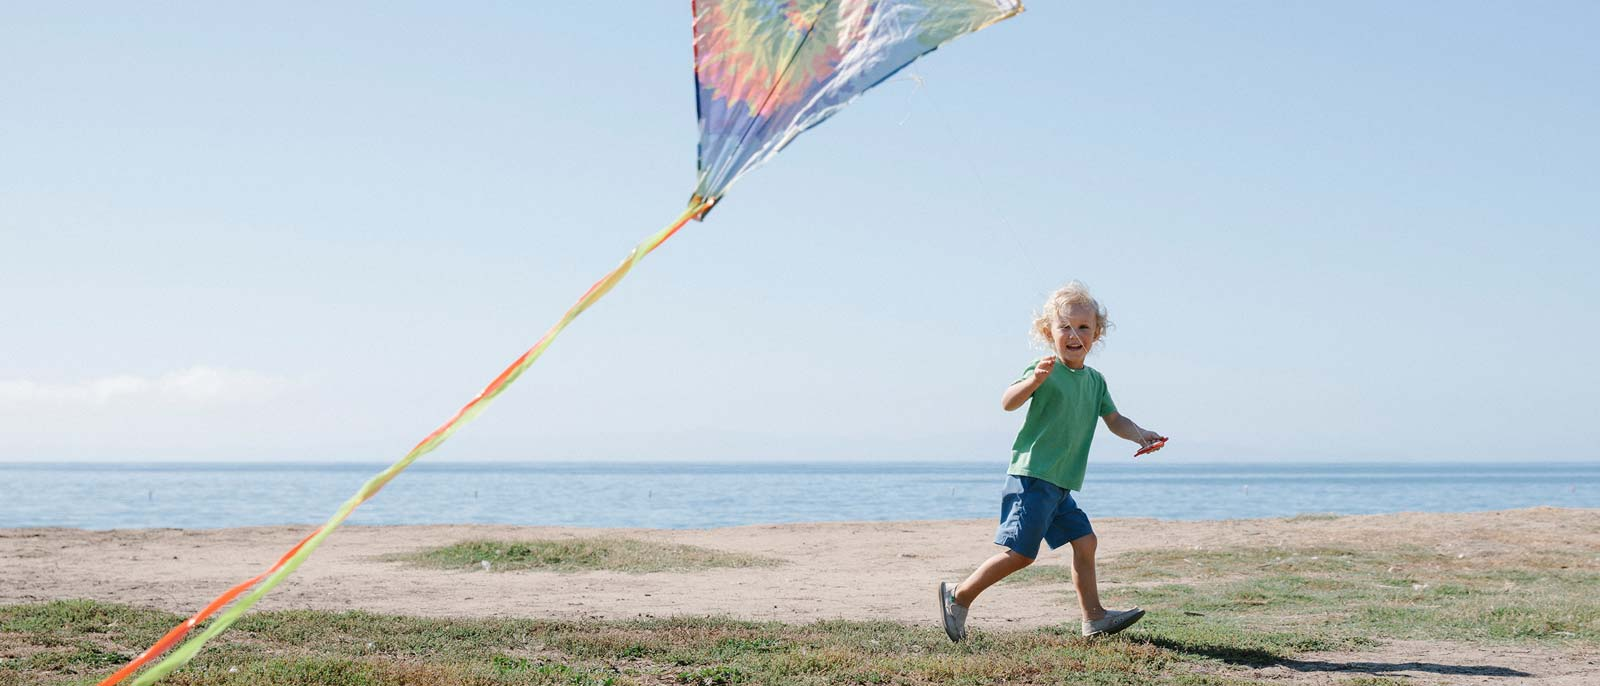 Kid flying a kite on the beach, wearing Sanuks.